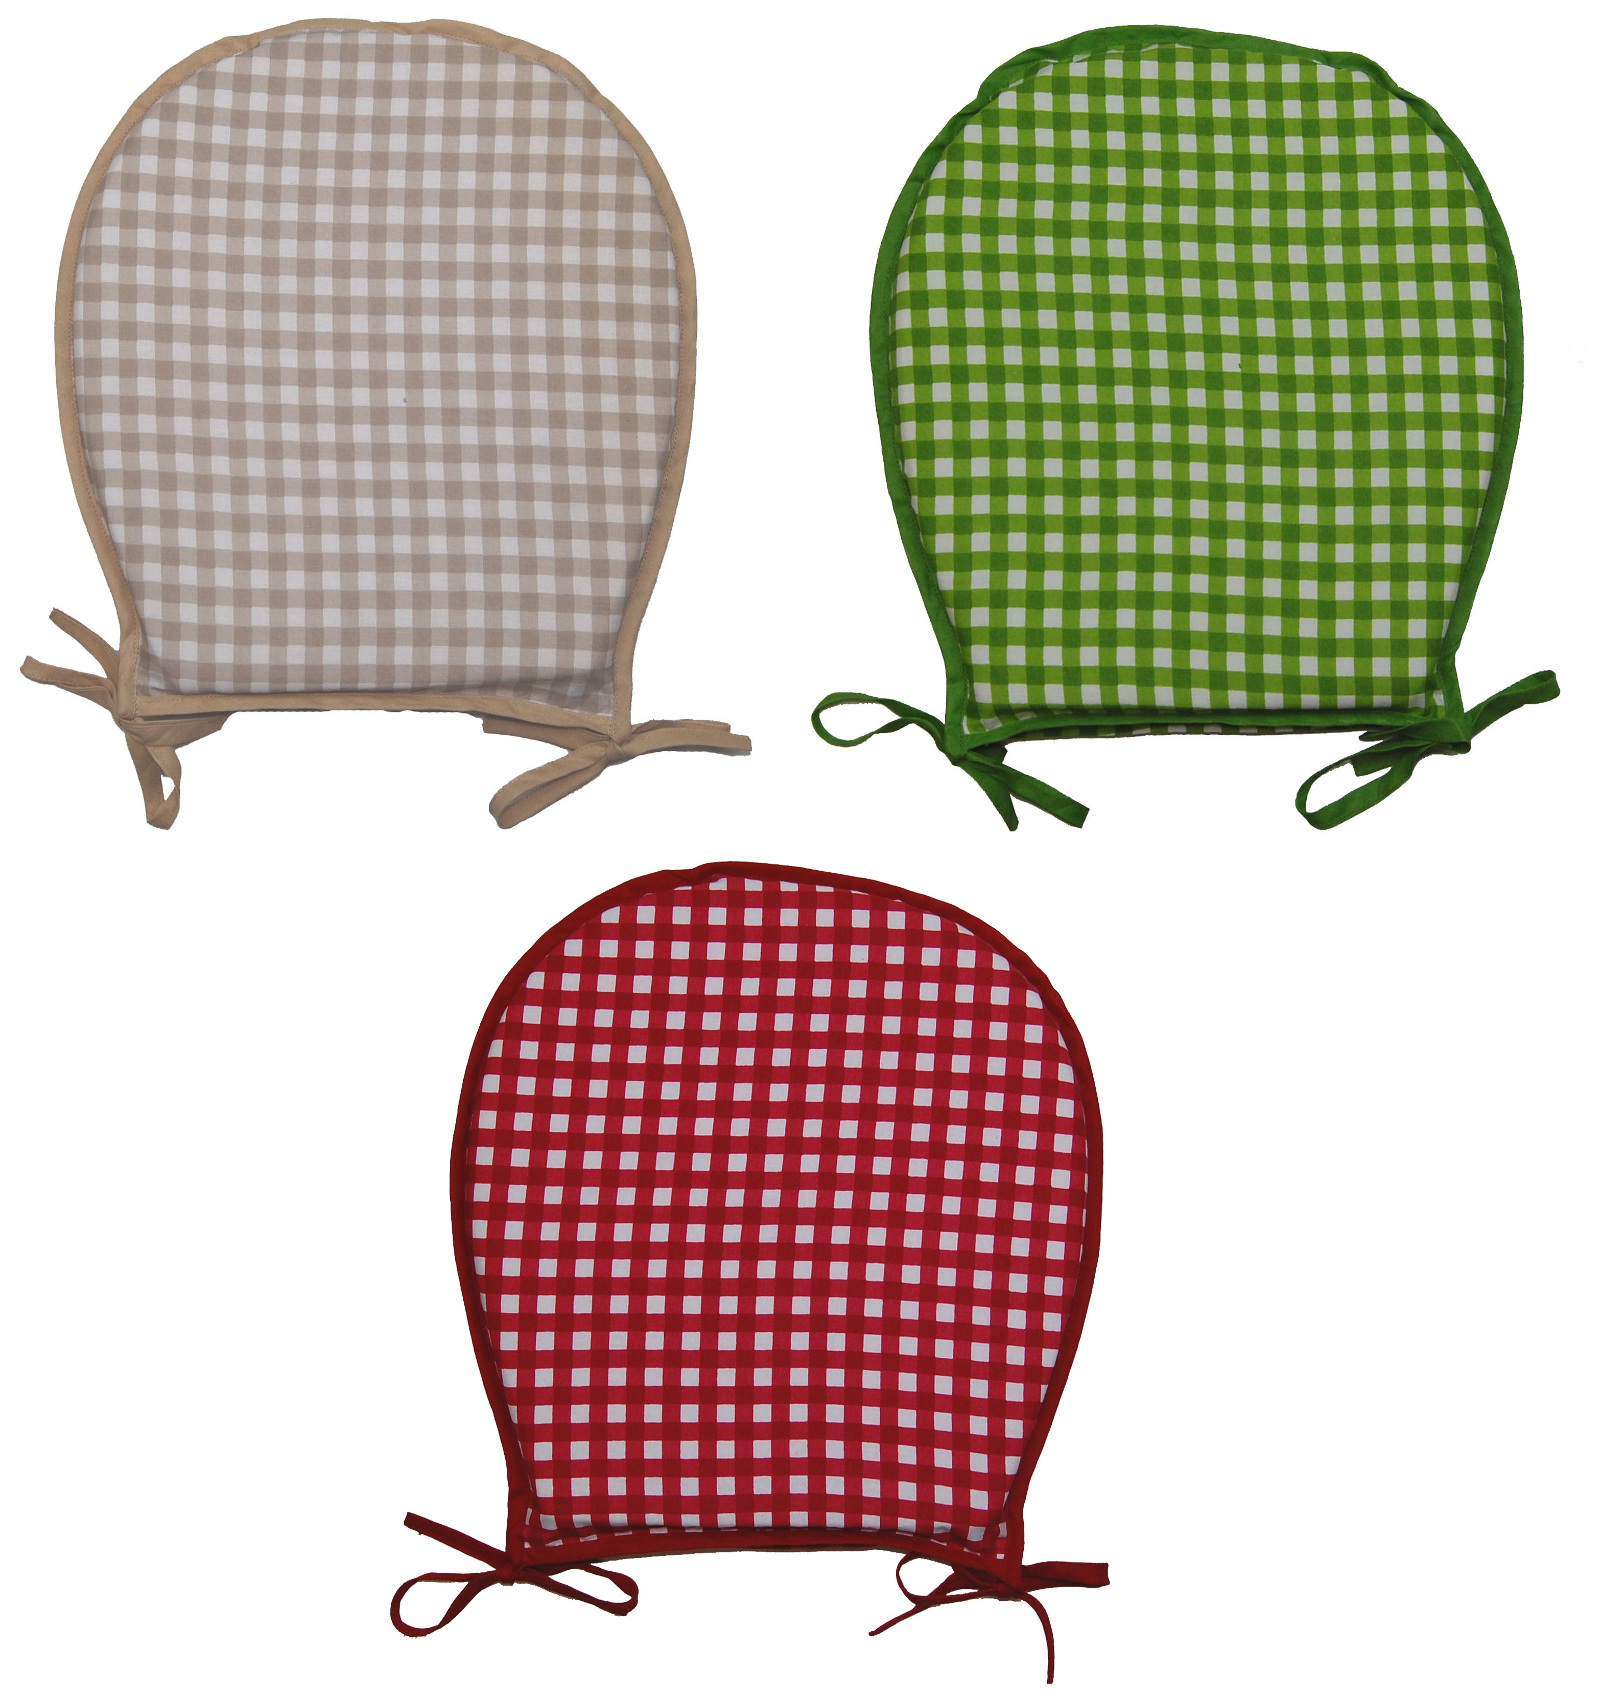 round chair pad outdoor and ottoman cushions 100 cotton gingham check seat dining garden